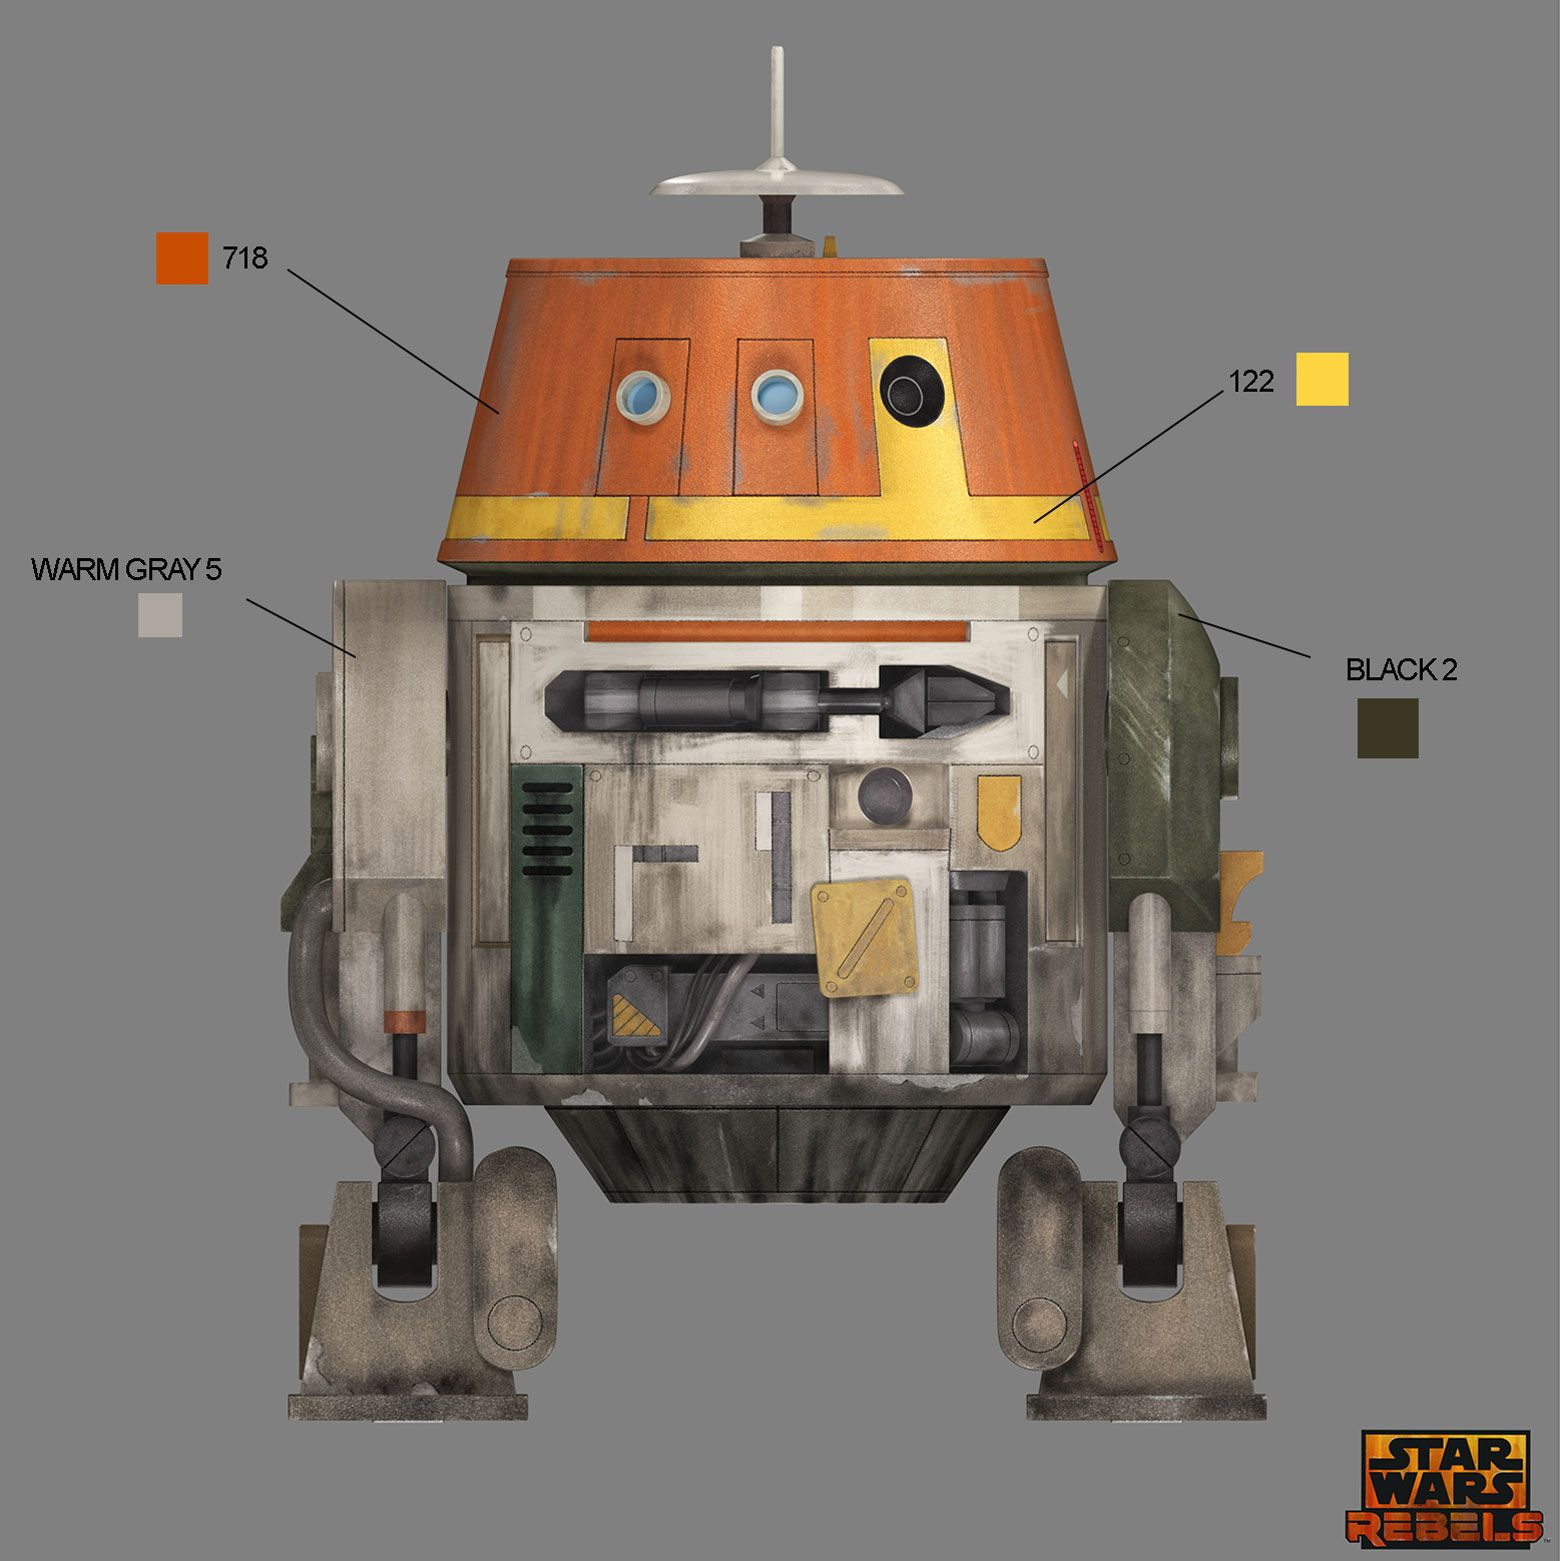 Chopper Star Wars Coloring Pages. Get a jump on your SDCC or Star Wars Celebration cosplay with this handy  color guide Rebels Pantone Colors fun stuff Pinterest